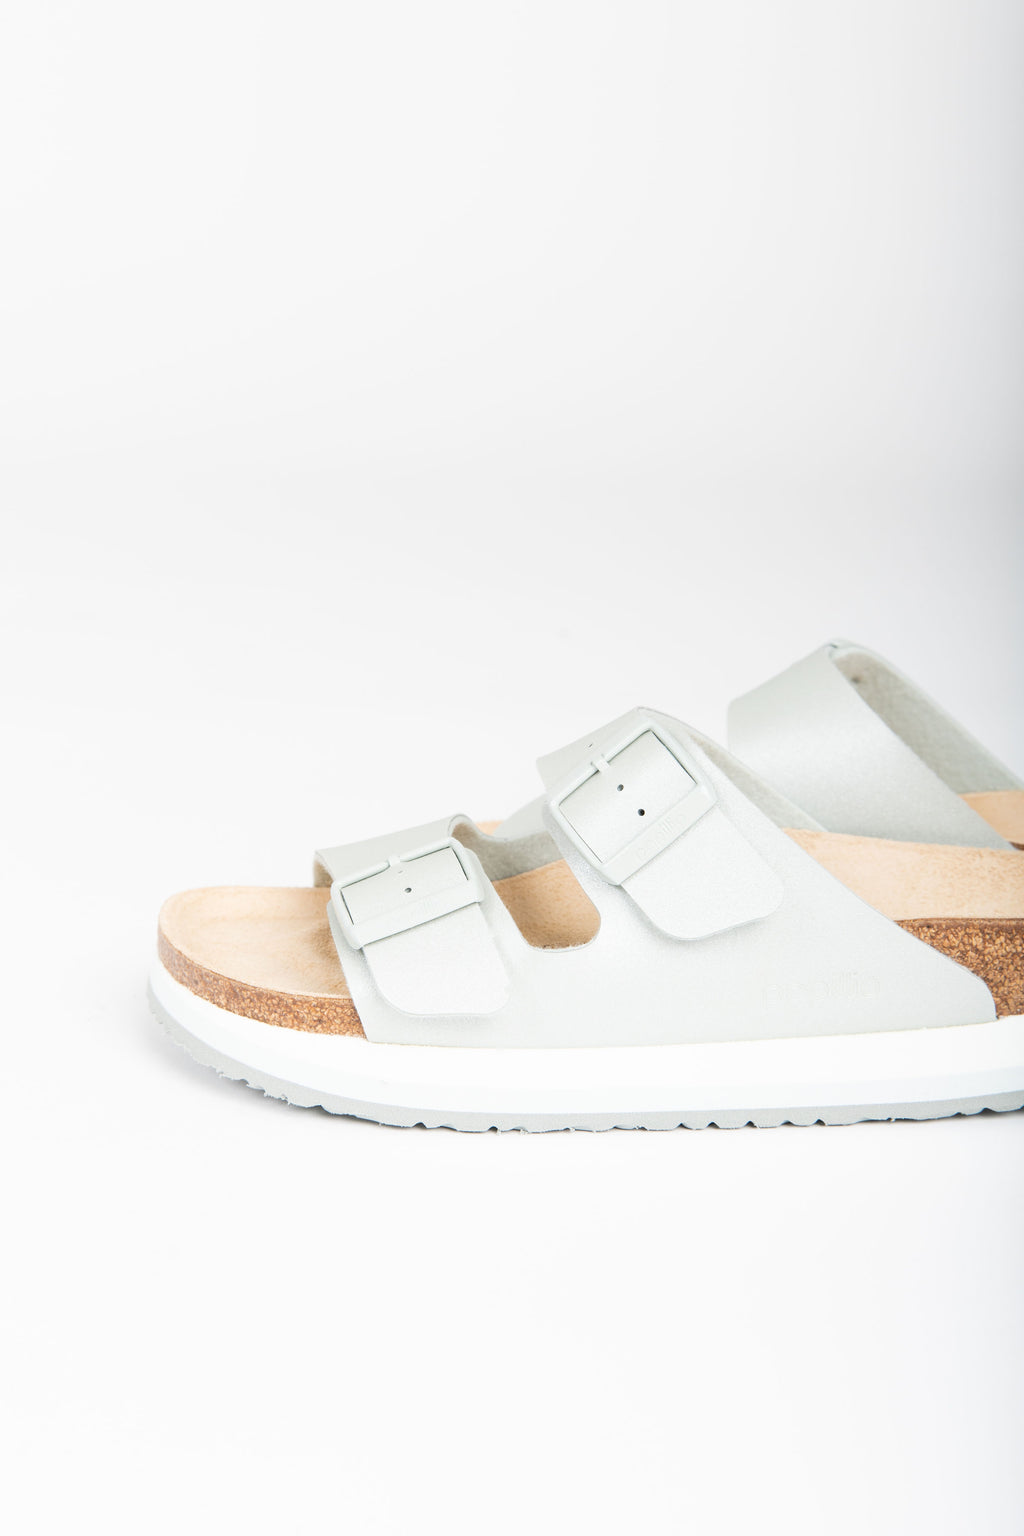 Birkenstock: Arizona Platform Birko-Flor in Icy Metallic Mineral (Narrow Fit)